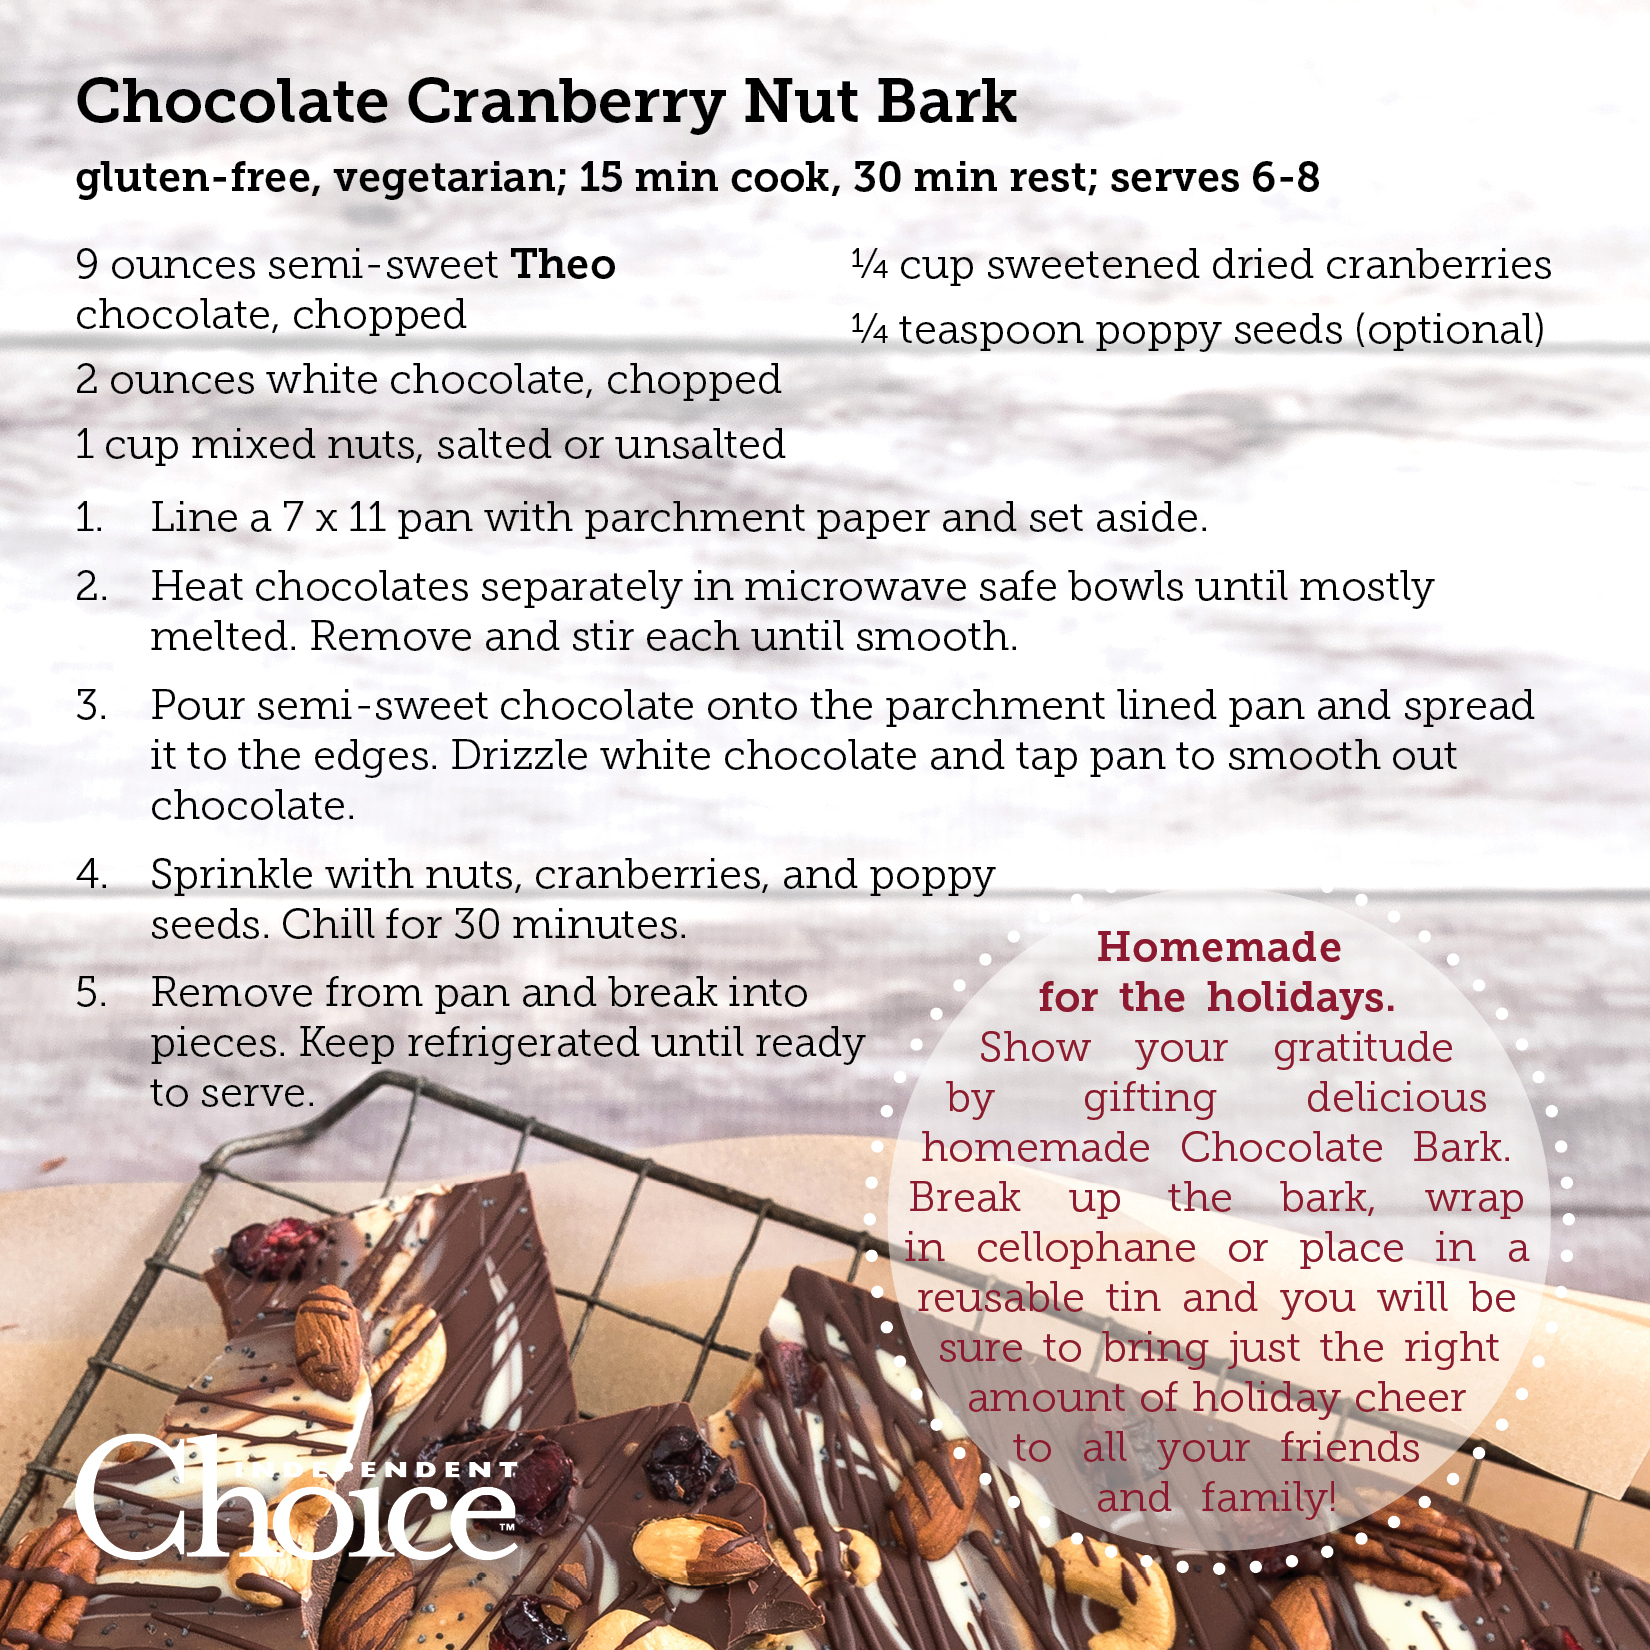 Chocolate Cranberry Nut Bark.jpg